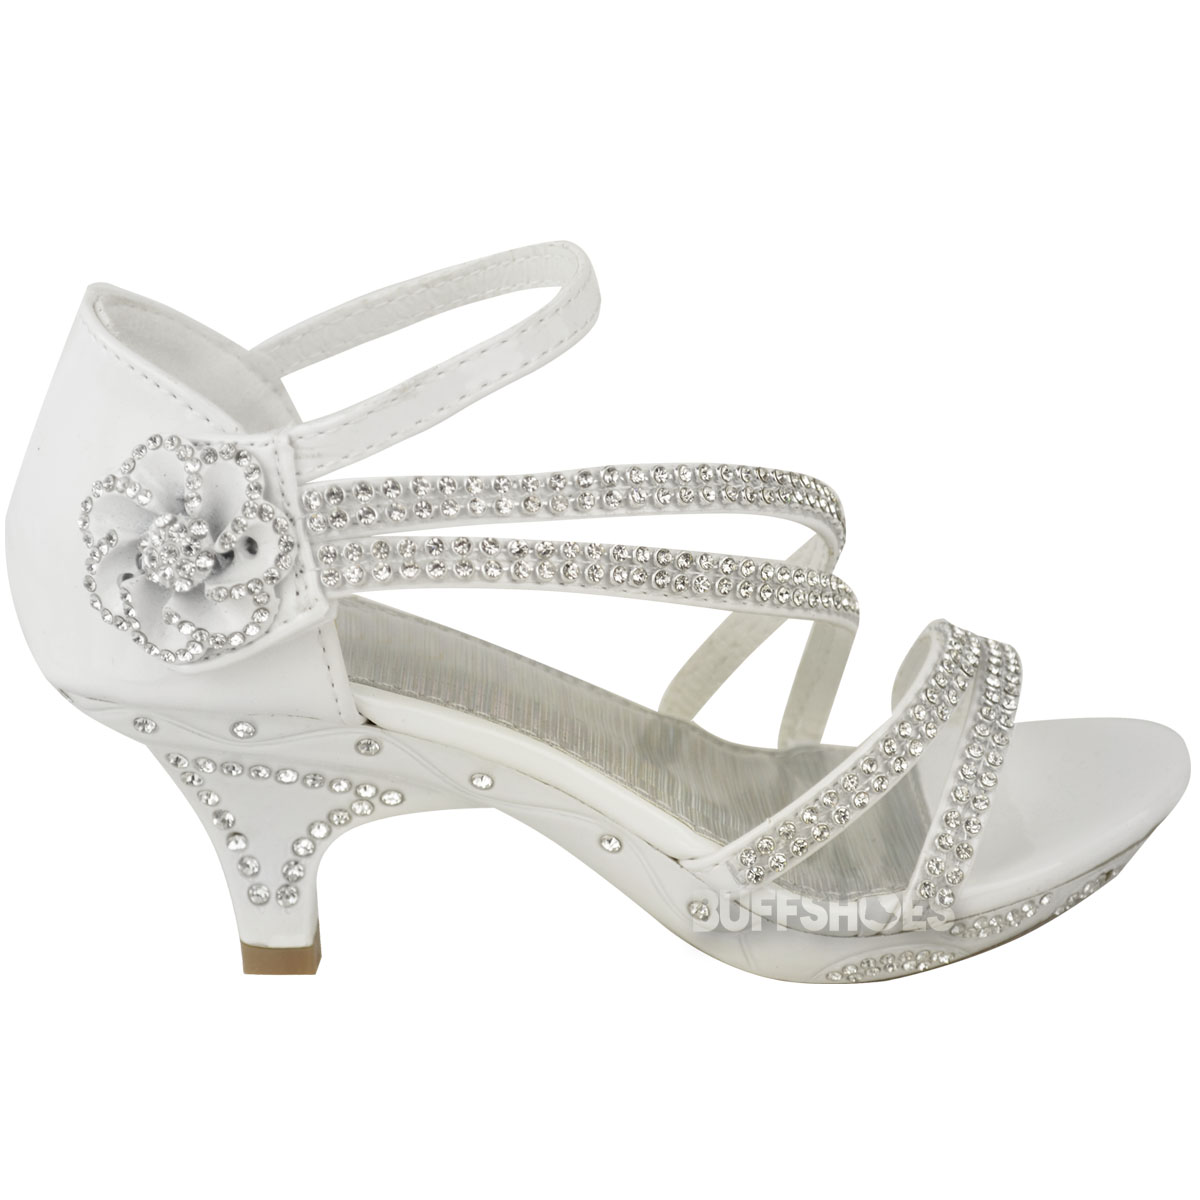 Sandals Wedding: New Girls Kids Low Heel Wedding Diamante Sandals